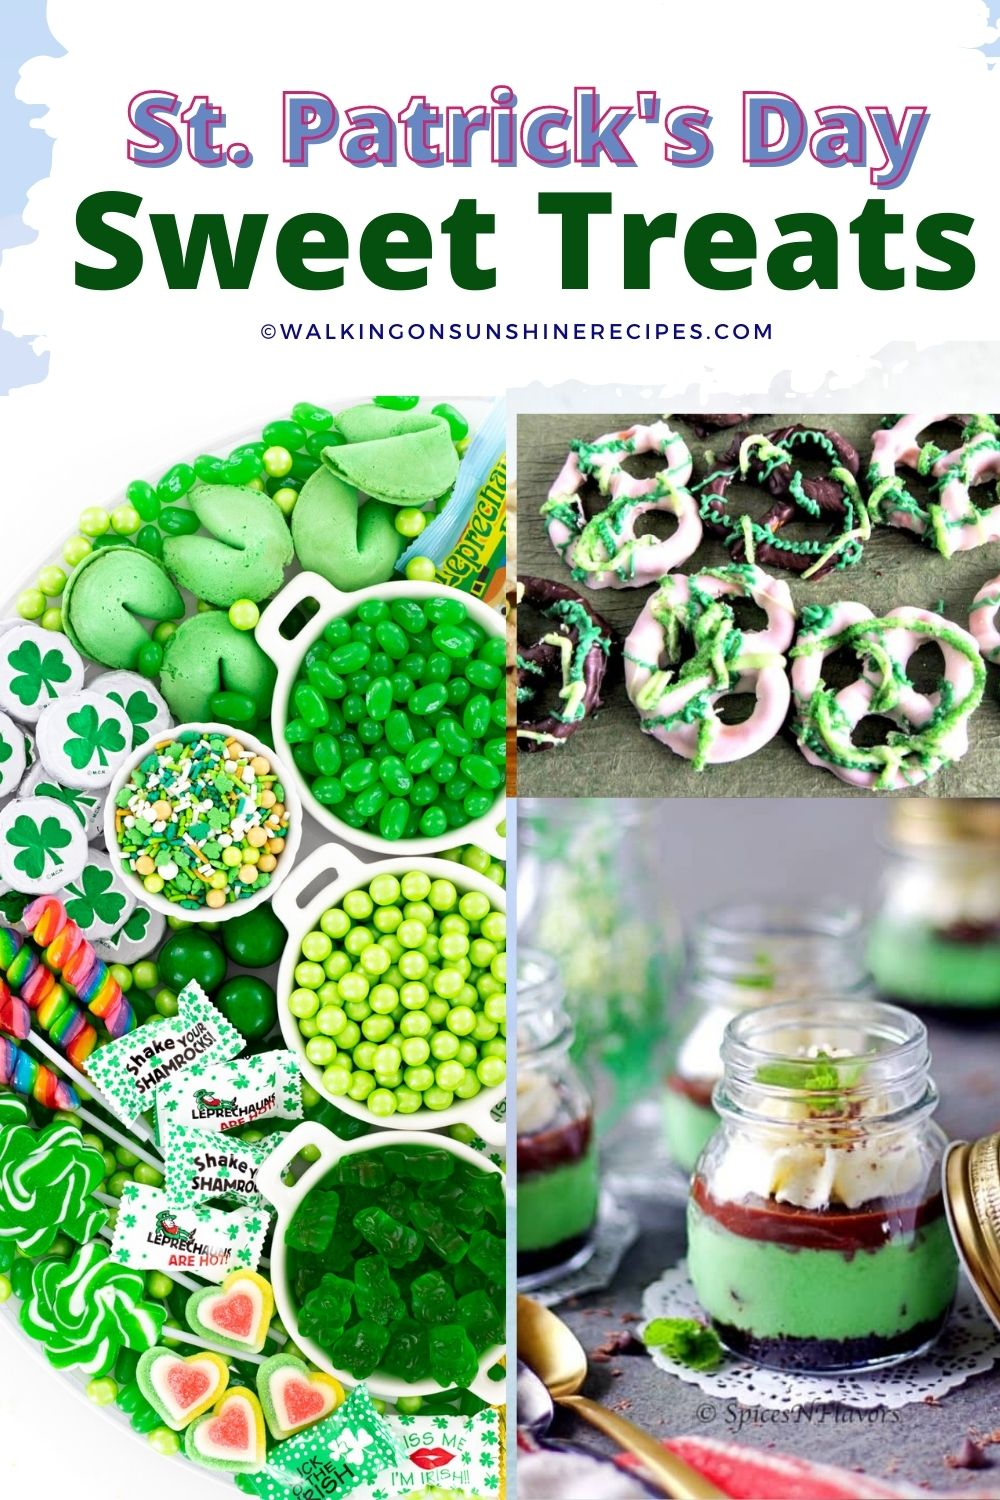 Green candy, sweets and treats.